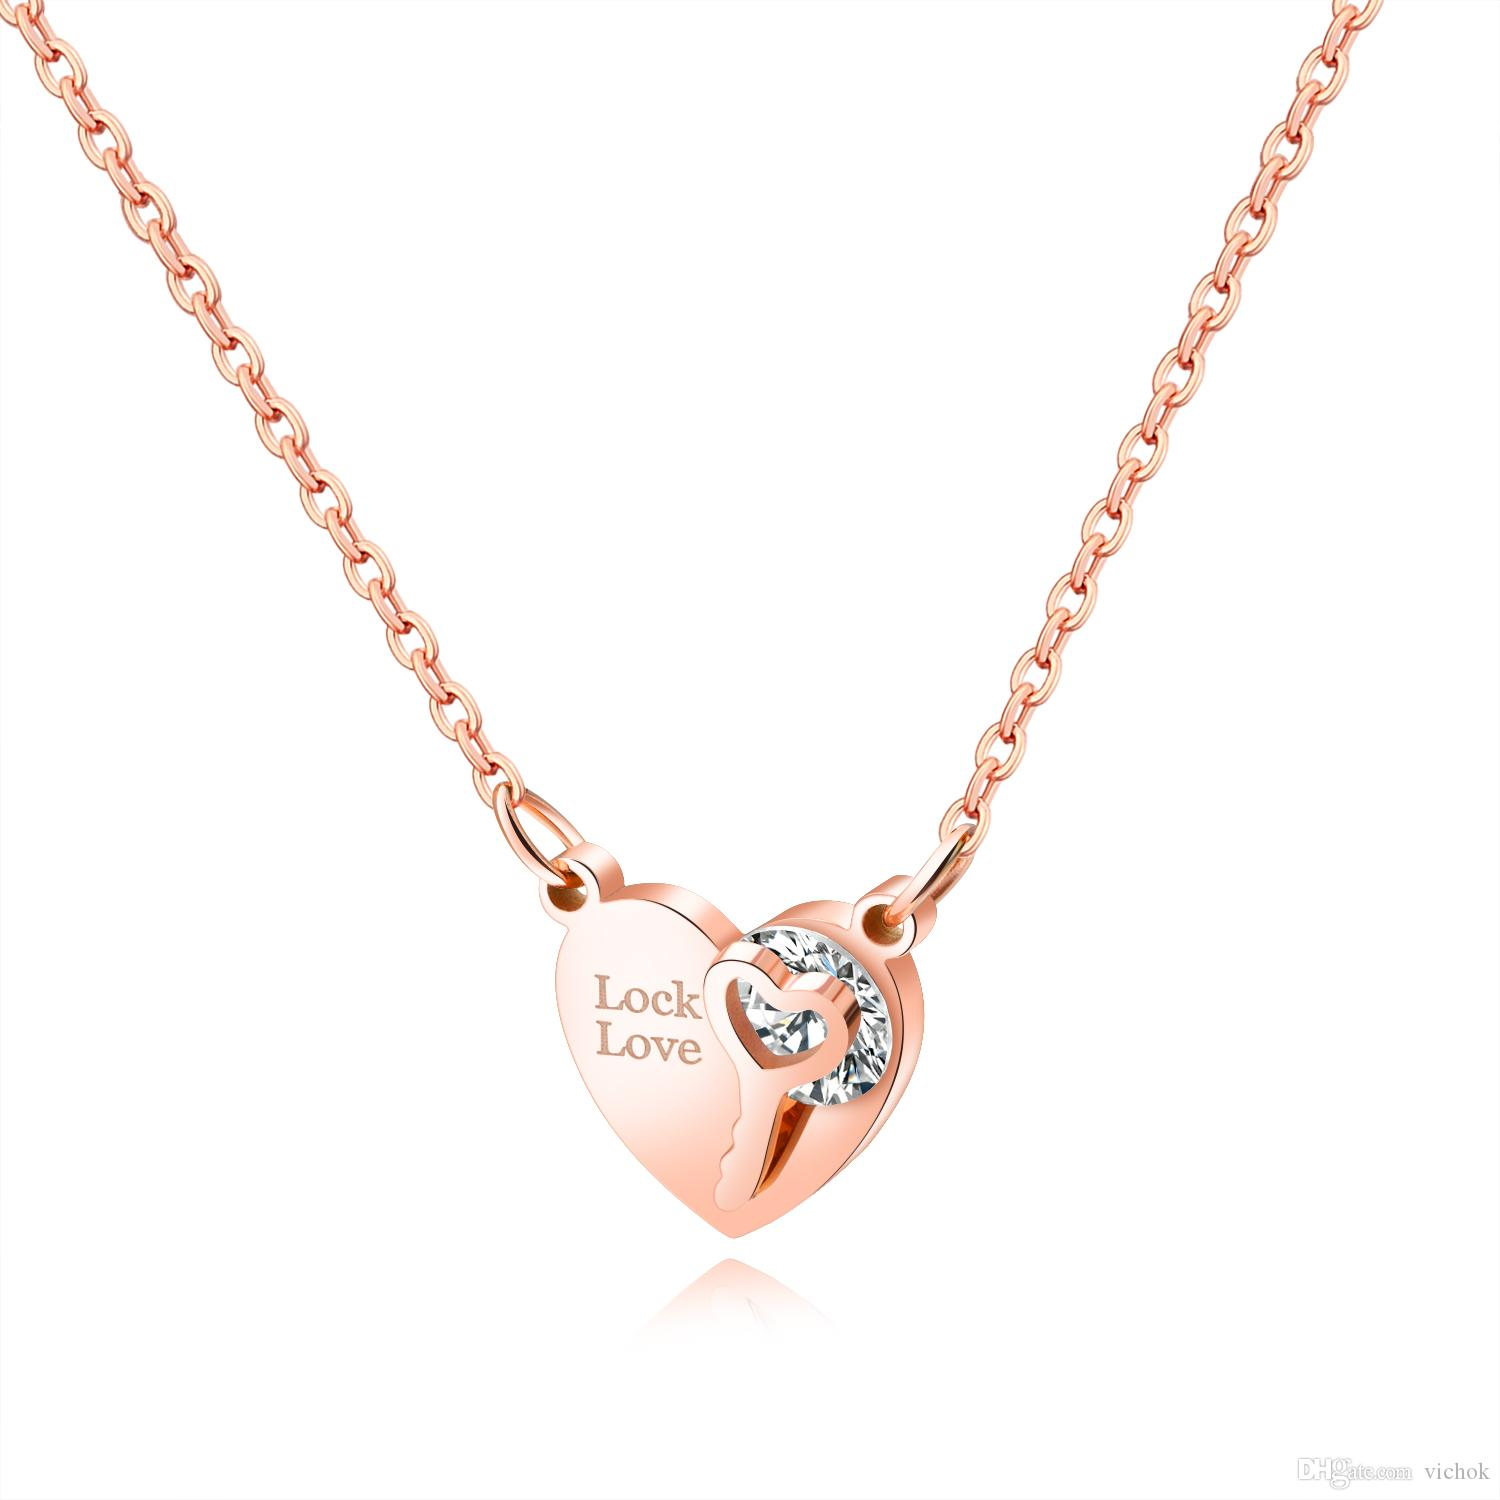 Stainless Steel Shiny Heart key Necklace Women CZ Stone Jewelry Chain Pendant Rose Gold Necklace VICHOK